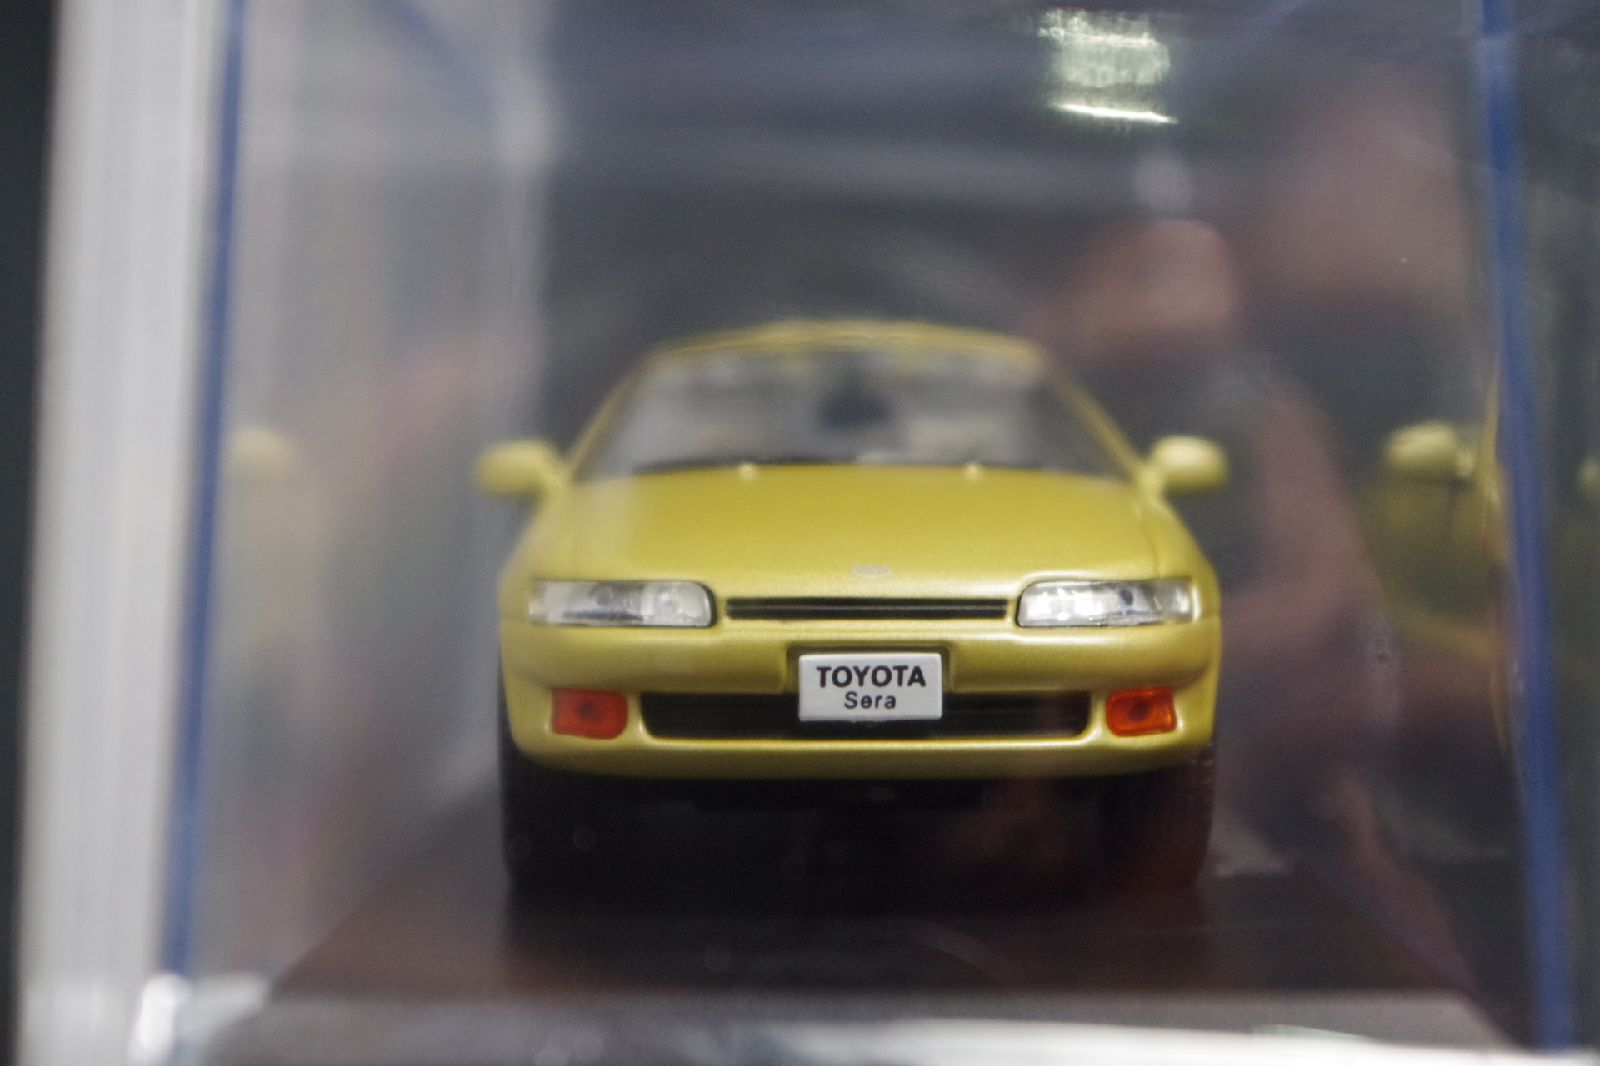 Toyota Sera 1990 1 1 1 43 Scale Box Mini Car Display Diecast Vol 98 03e135